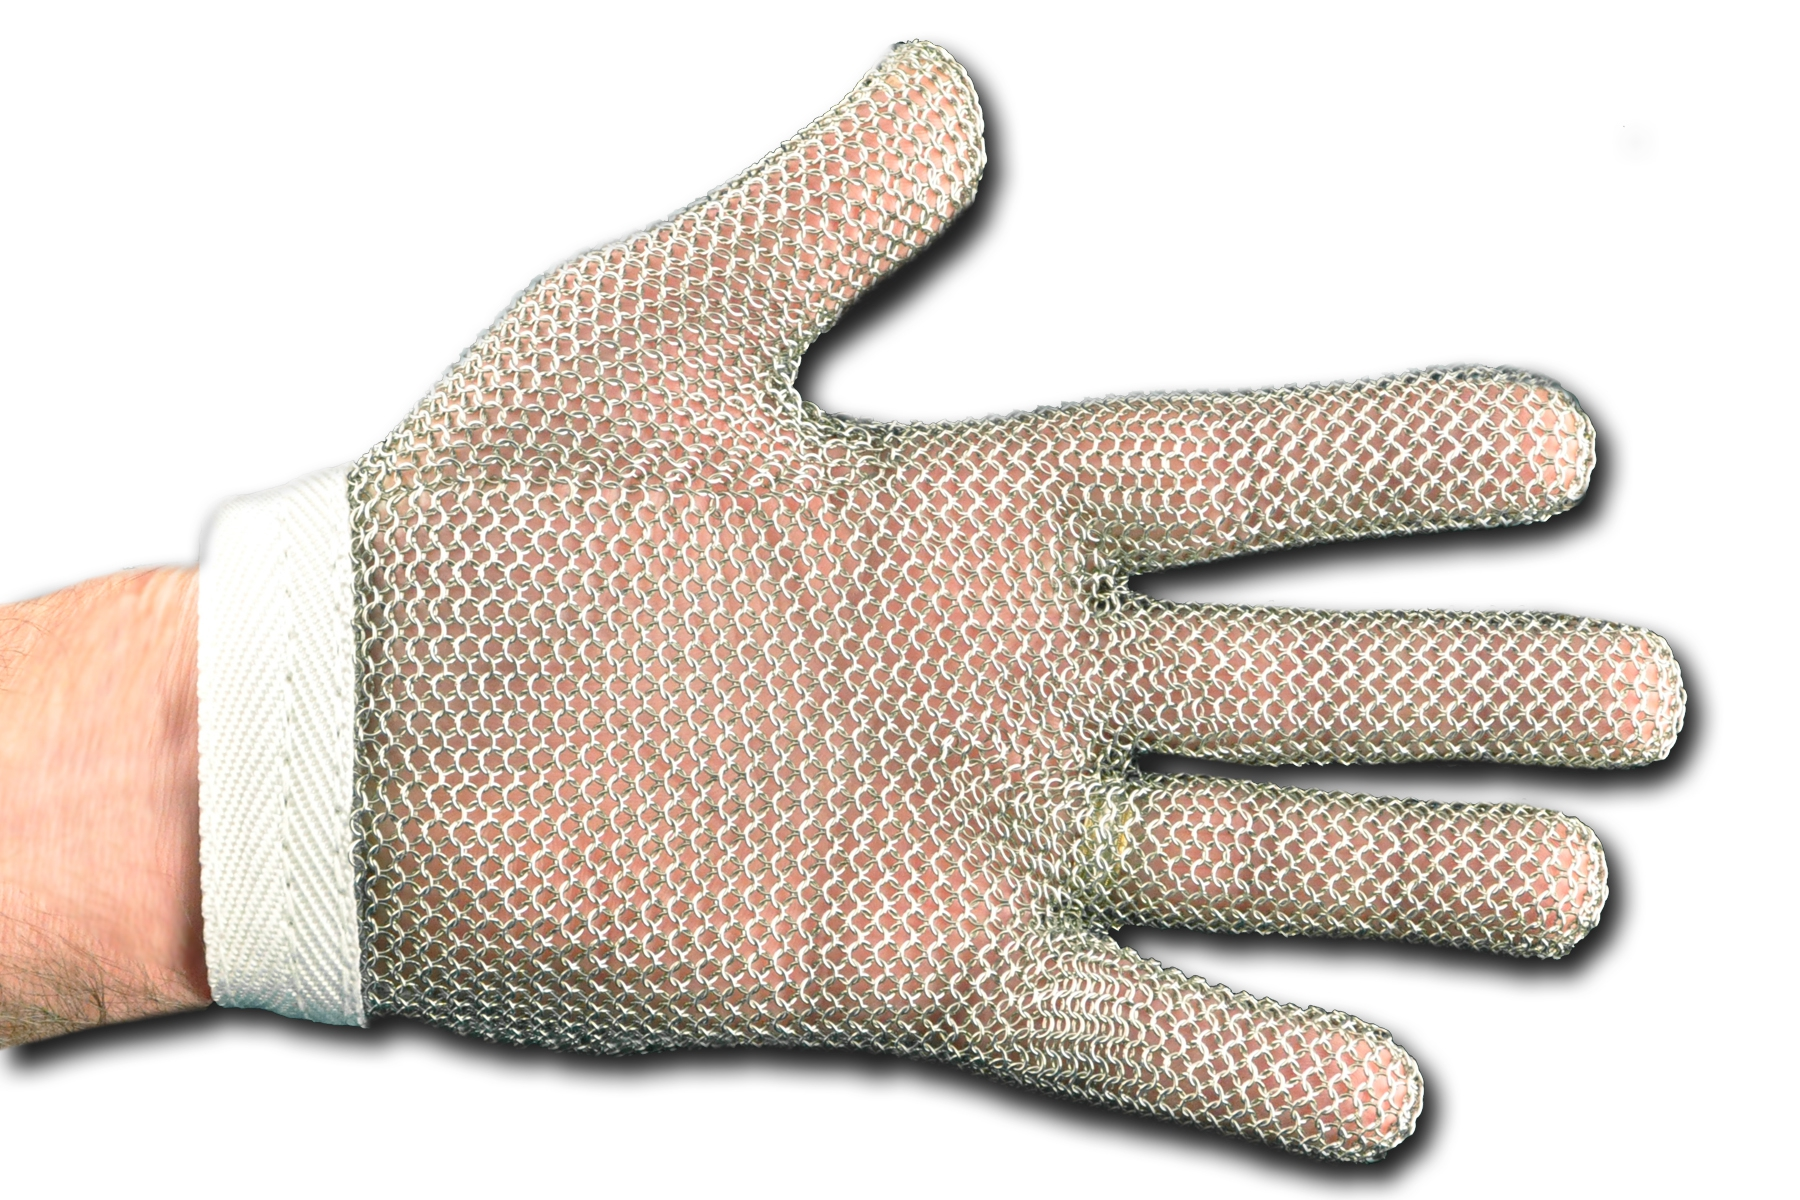 Dexter Russell 82153 protective gloves